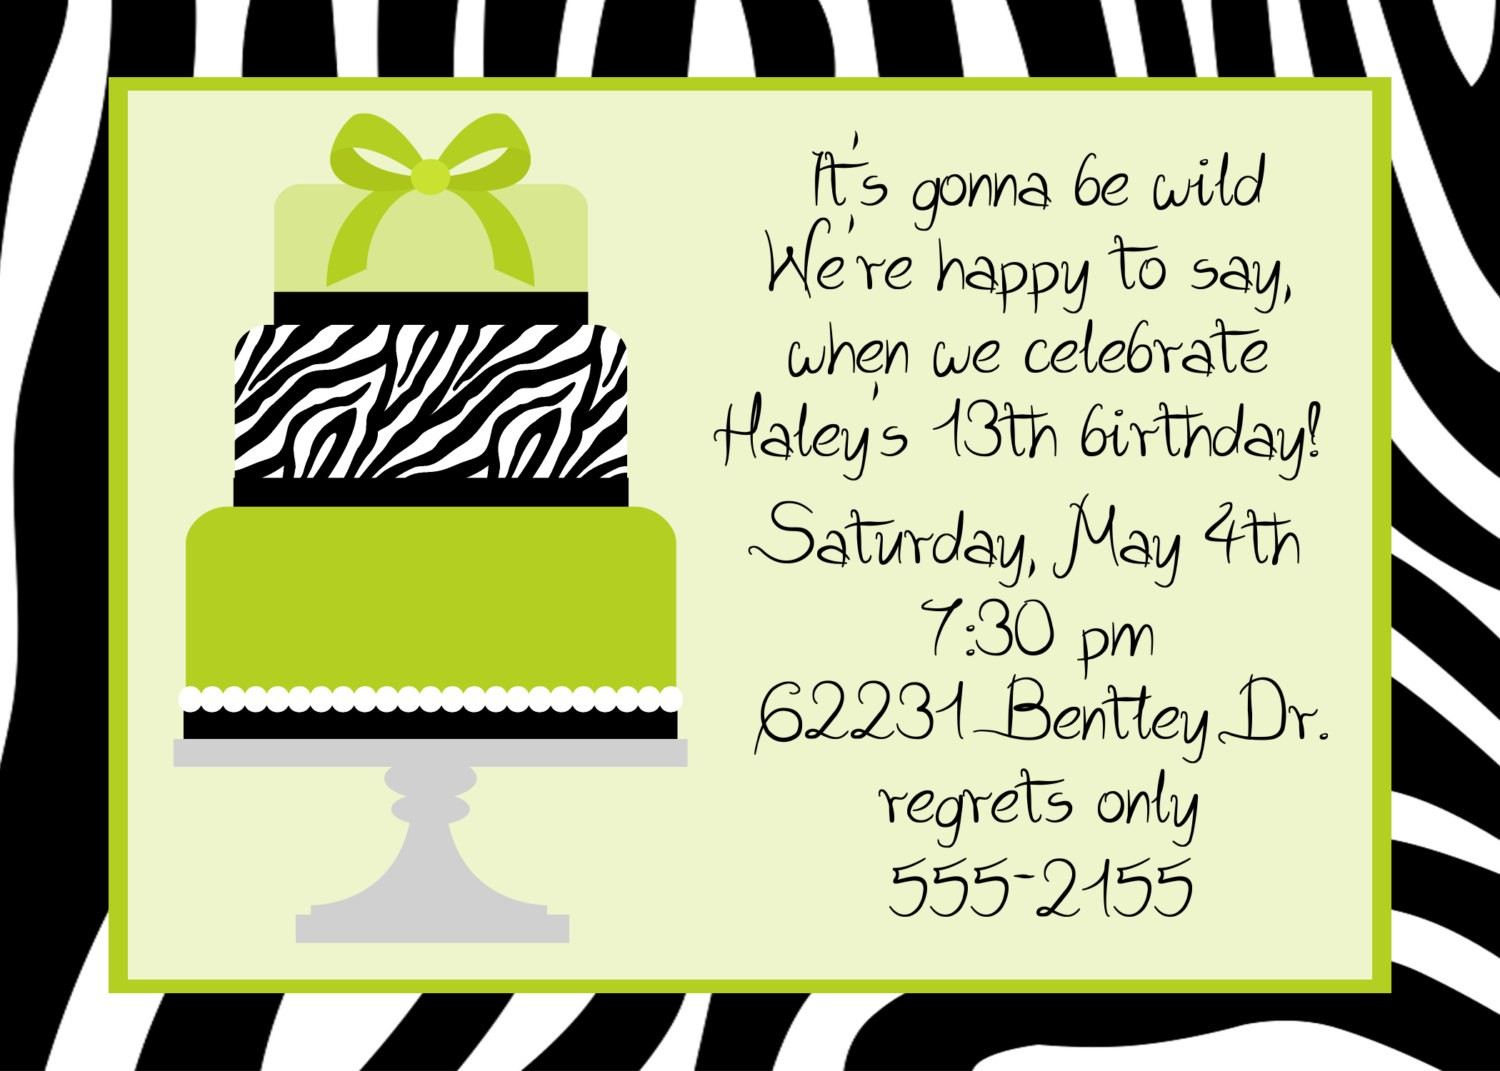 Invitation Text For Party - Mickey Mouse Invitations Templates